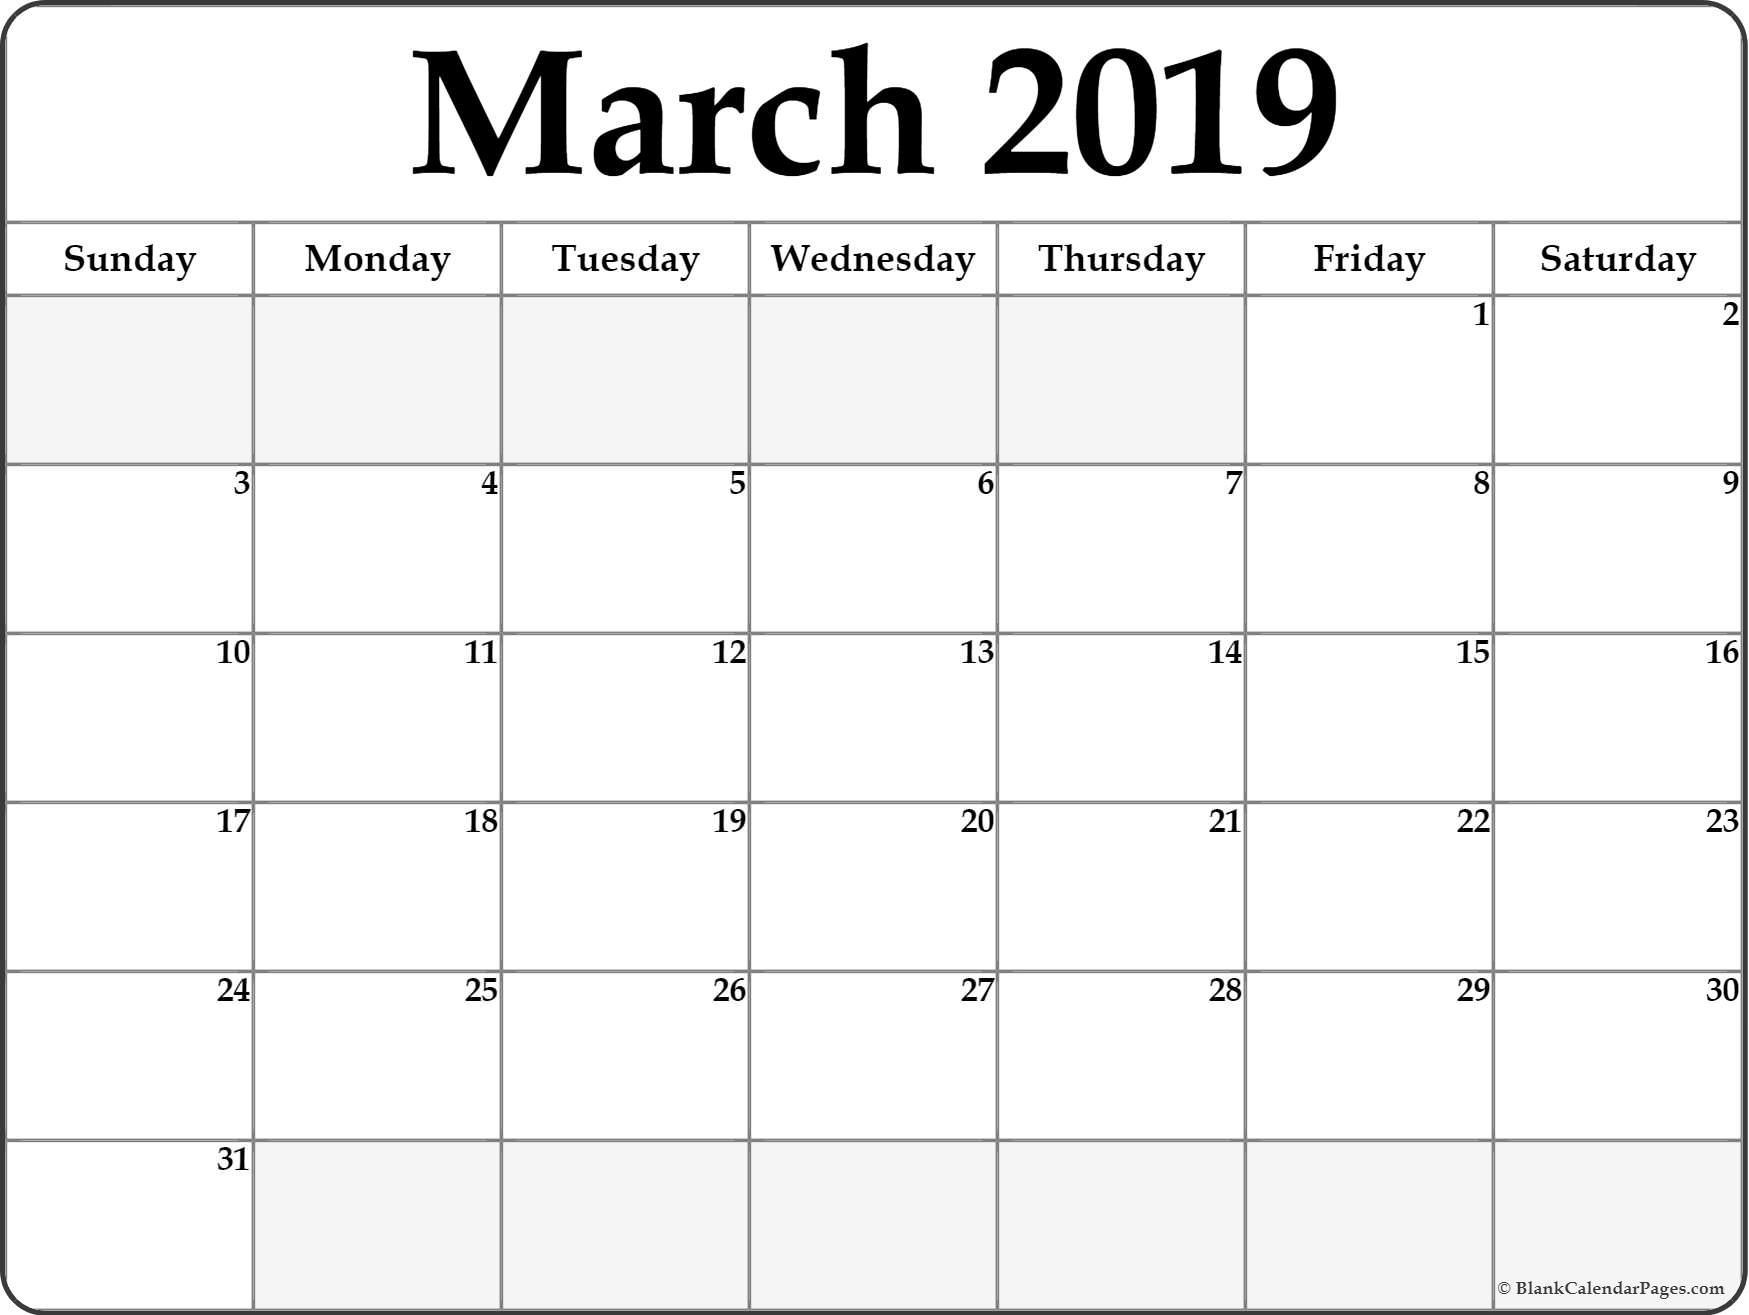 March 2019 Calendar #March #Marchcalendar #March2019Calendar  Free Printable Monthly Calendar March 2021